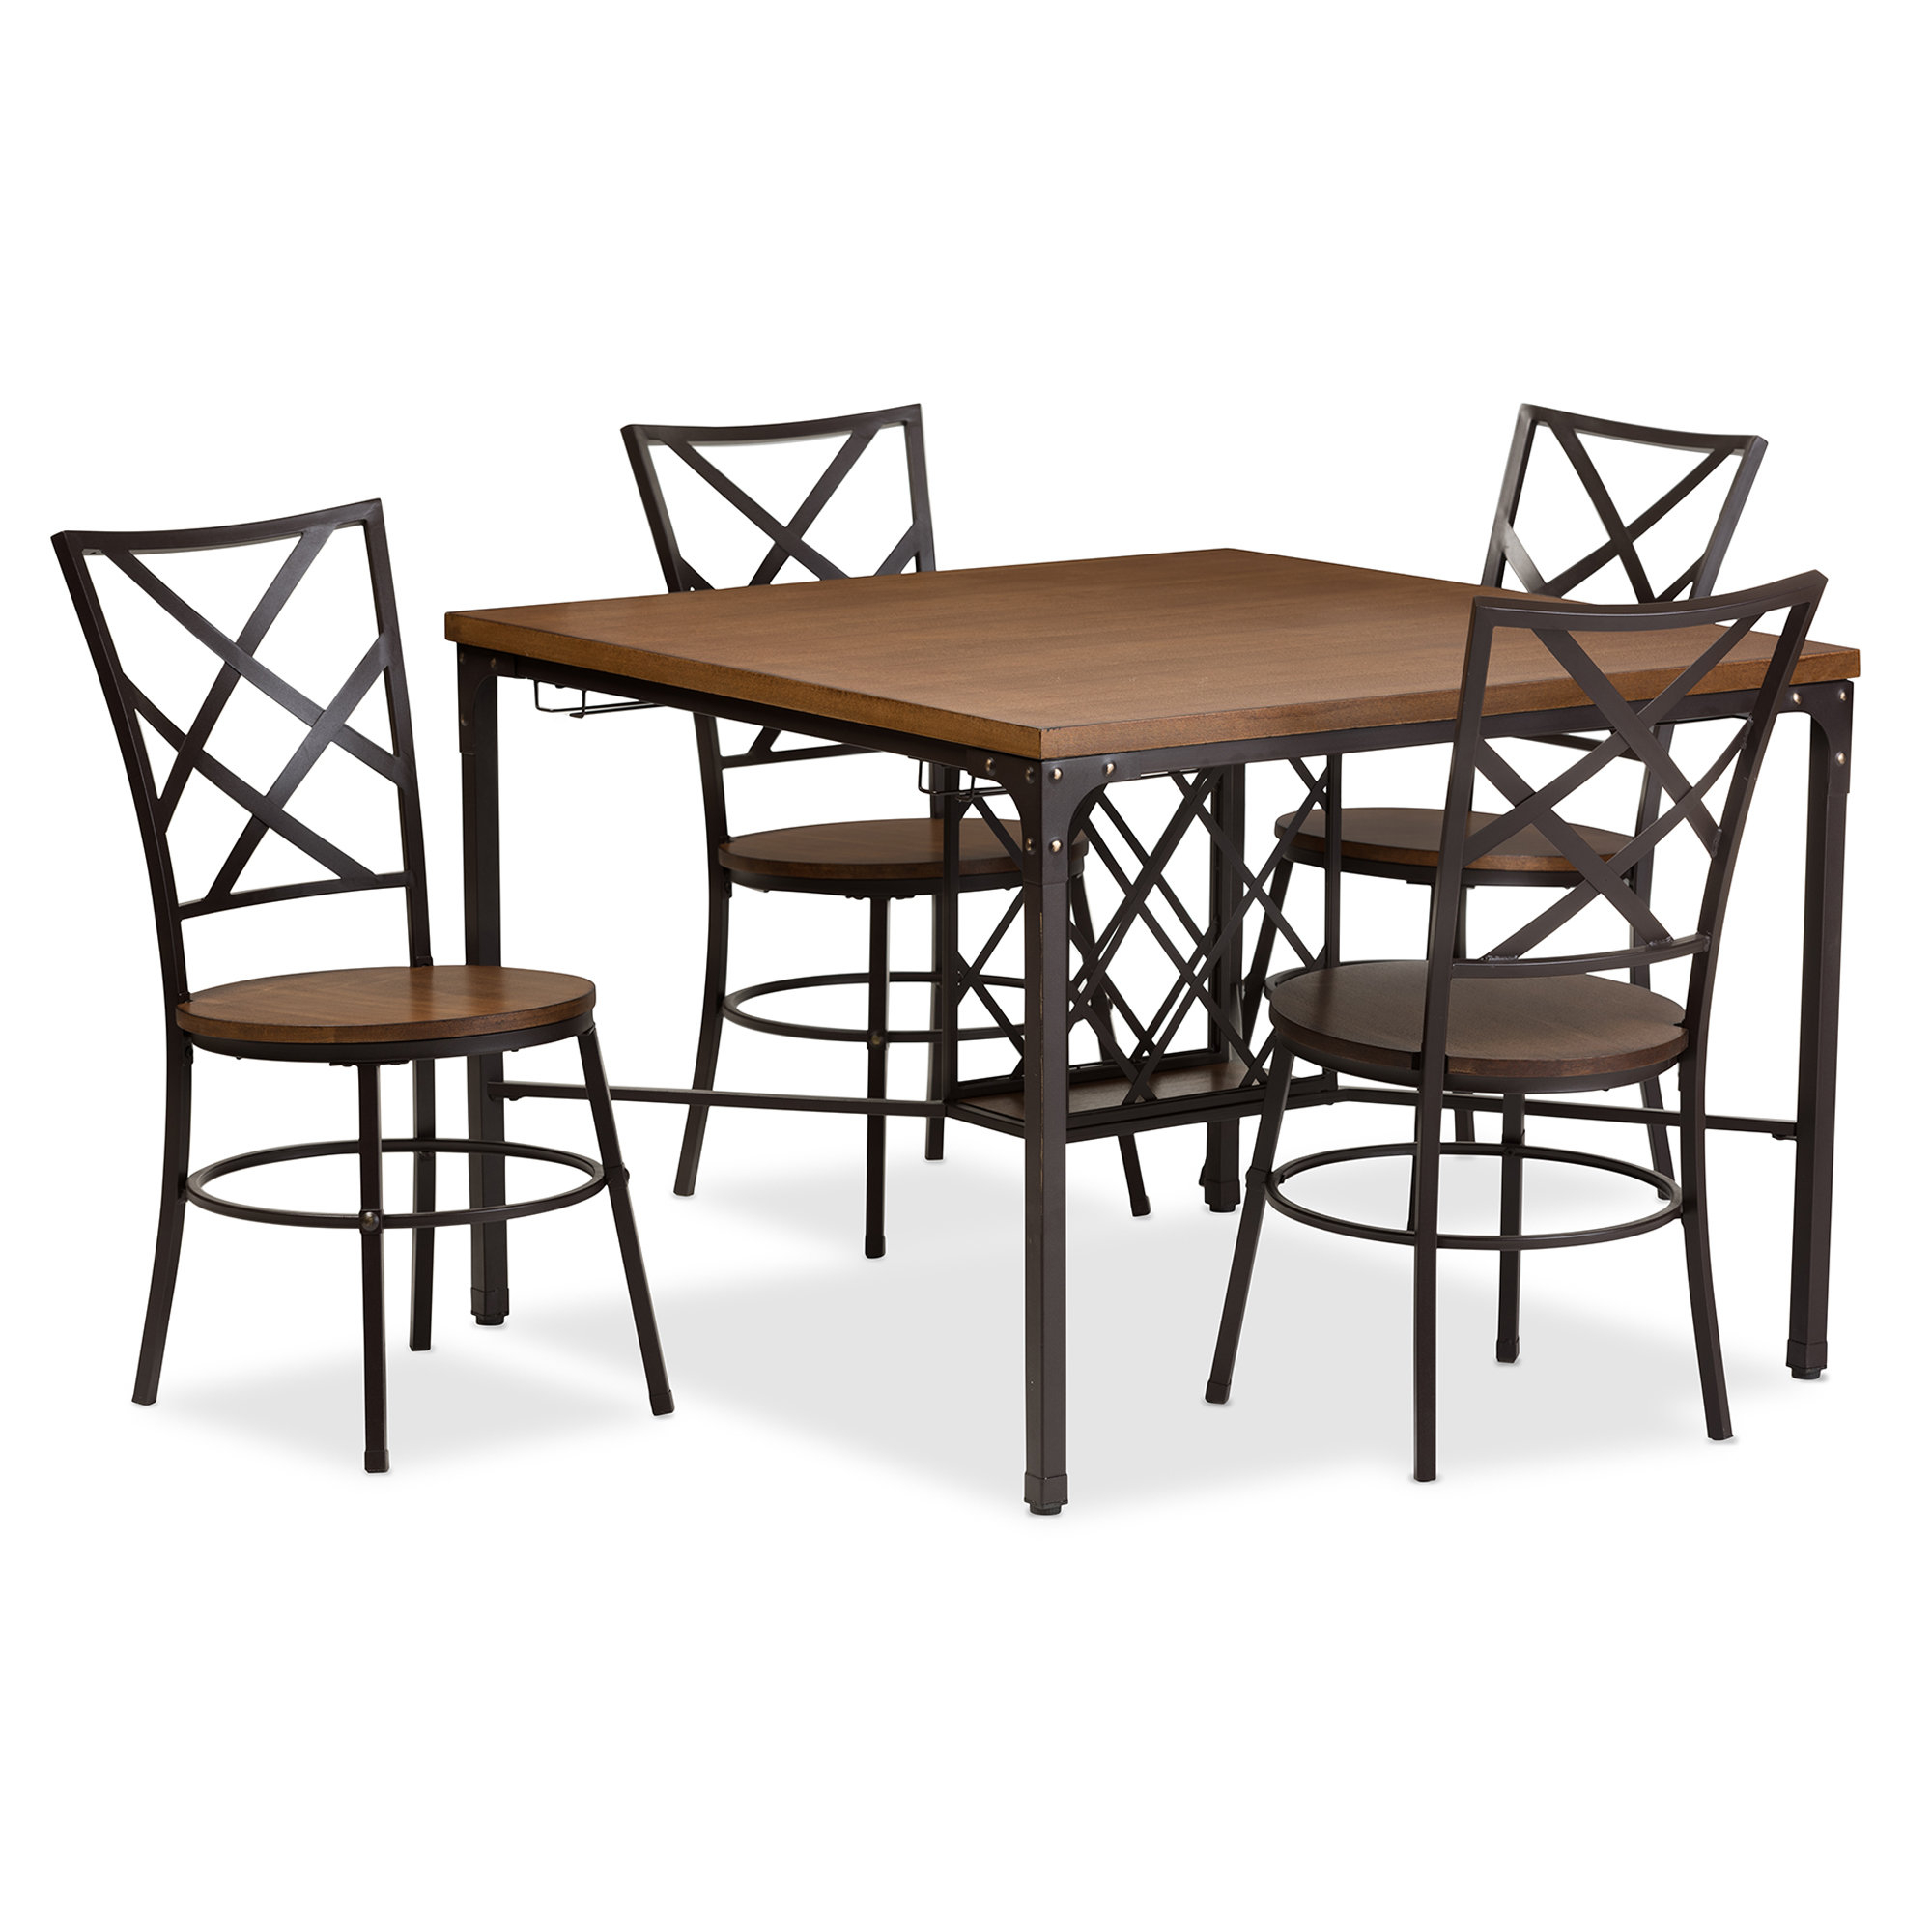 Calla 5 Piece Dining Set Within Most Recently Released Casiano 5 Piece Dining Sets (Image 6 of 20)